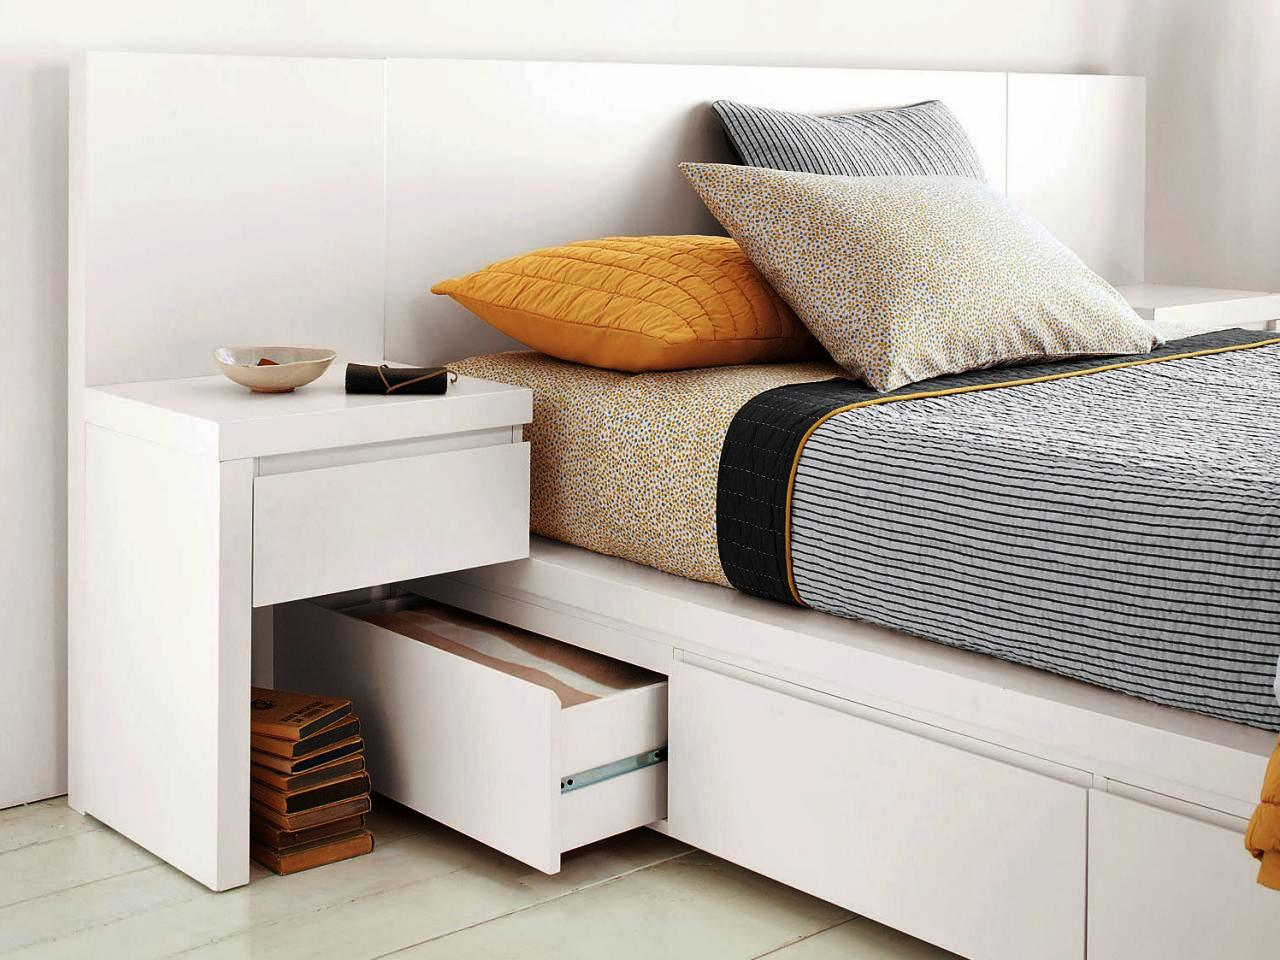 Best Small Spaces Storage Ideas (1)